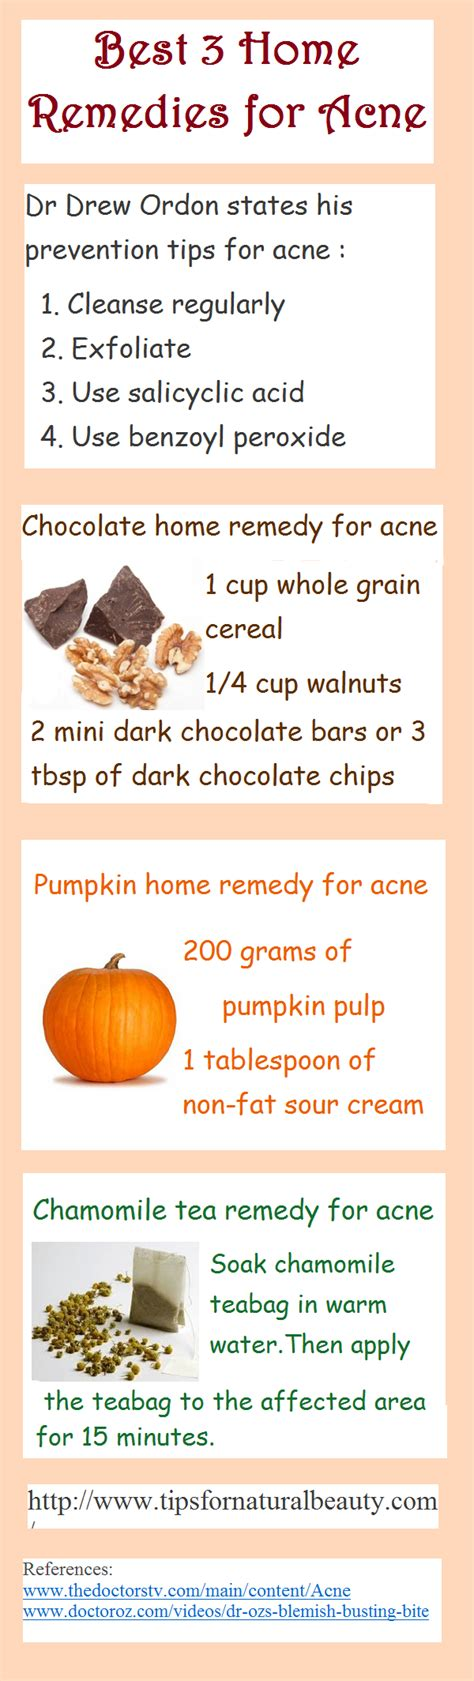 acne home remedies three diy home remedies for acne infographic tips for